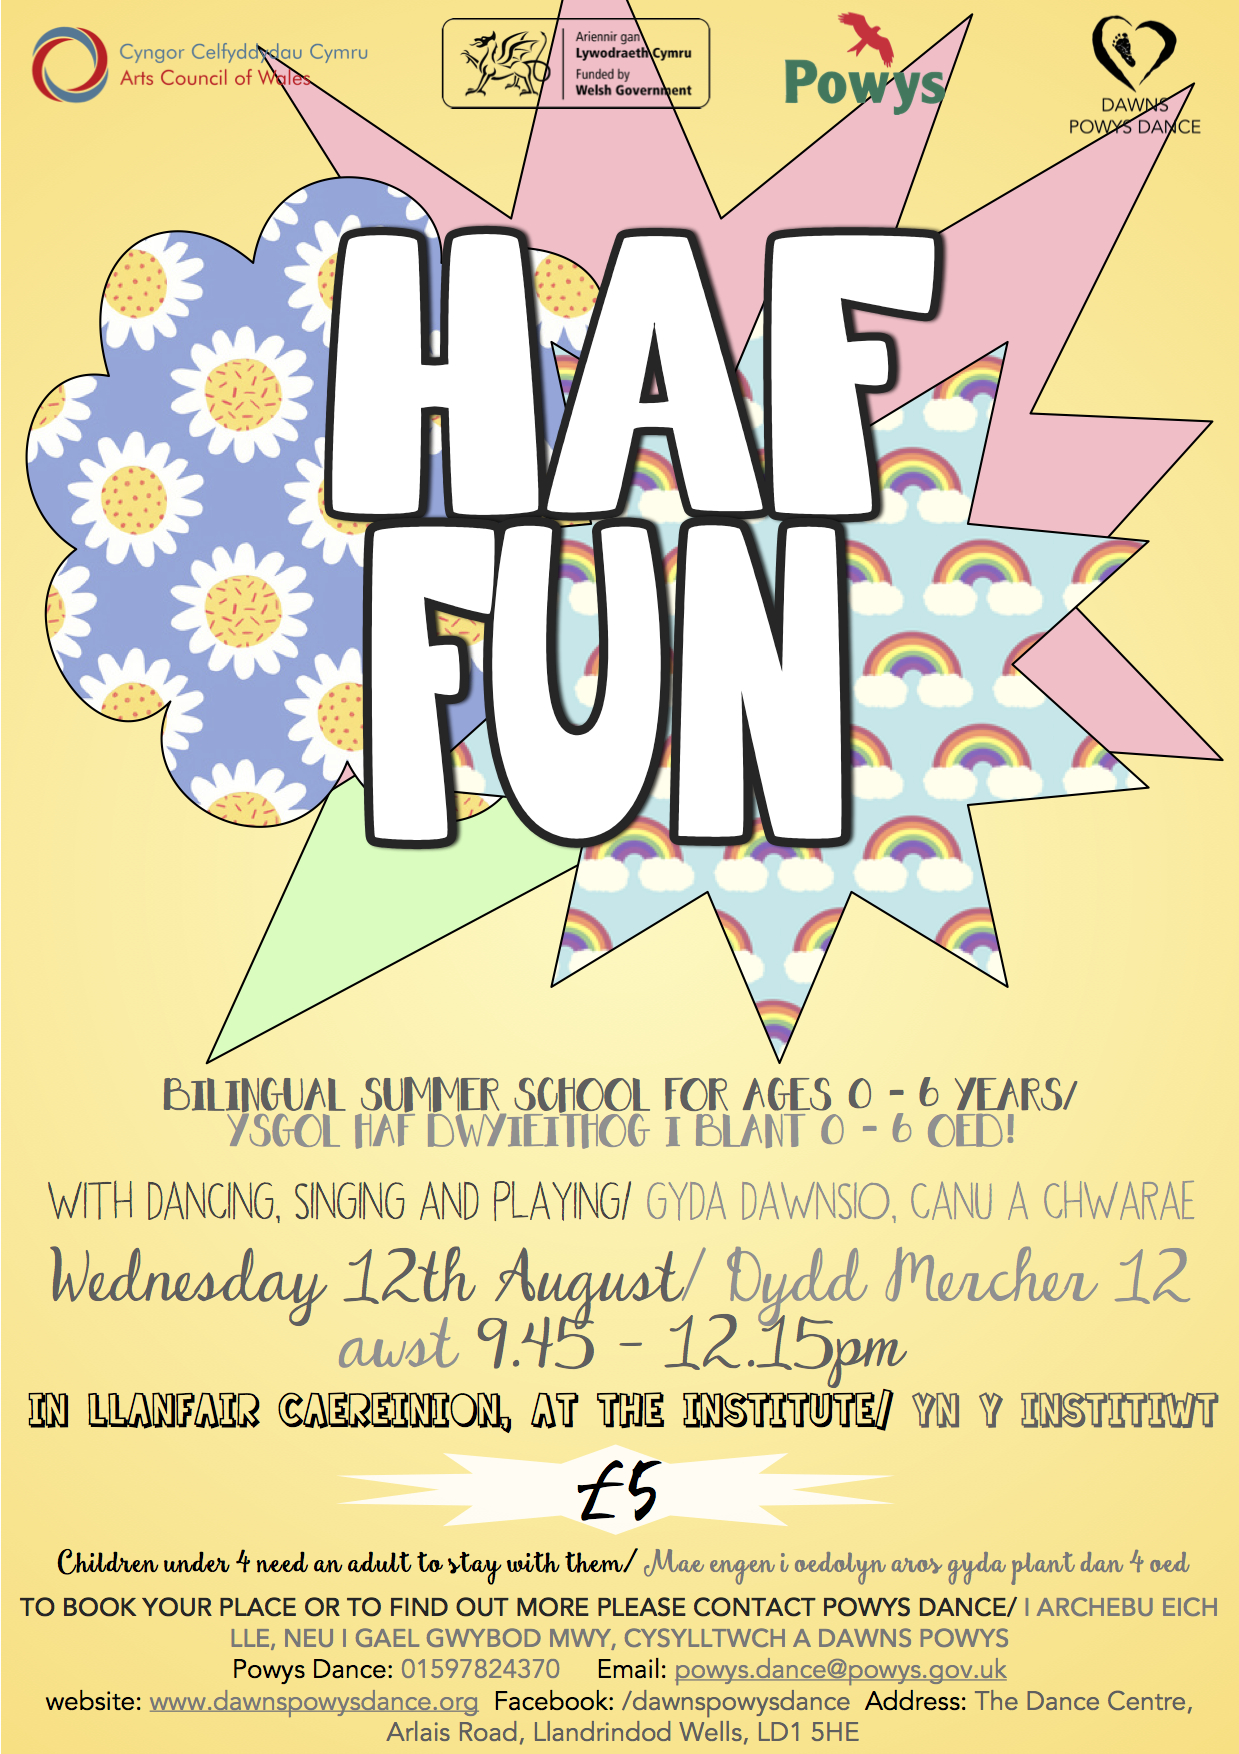 HAF FUN - WEDNESDAY